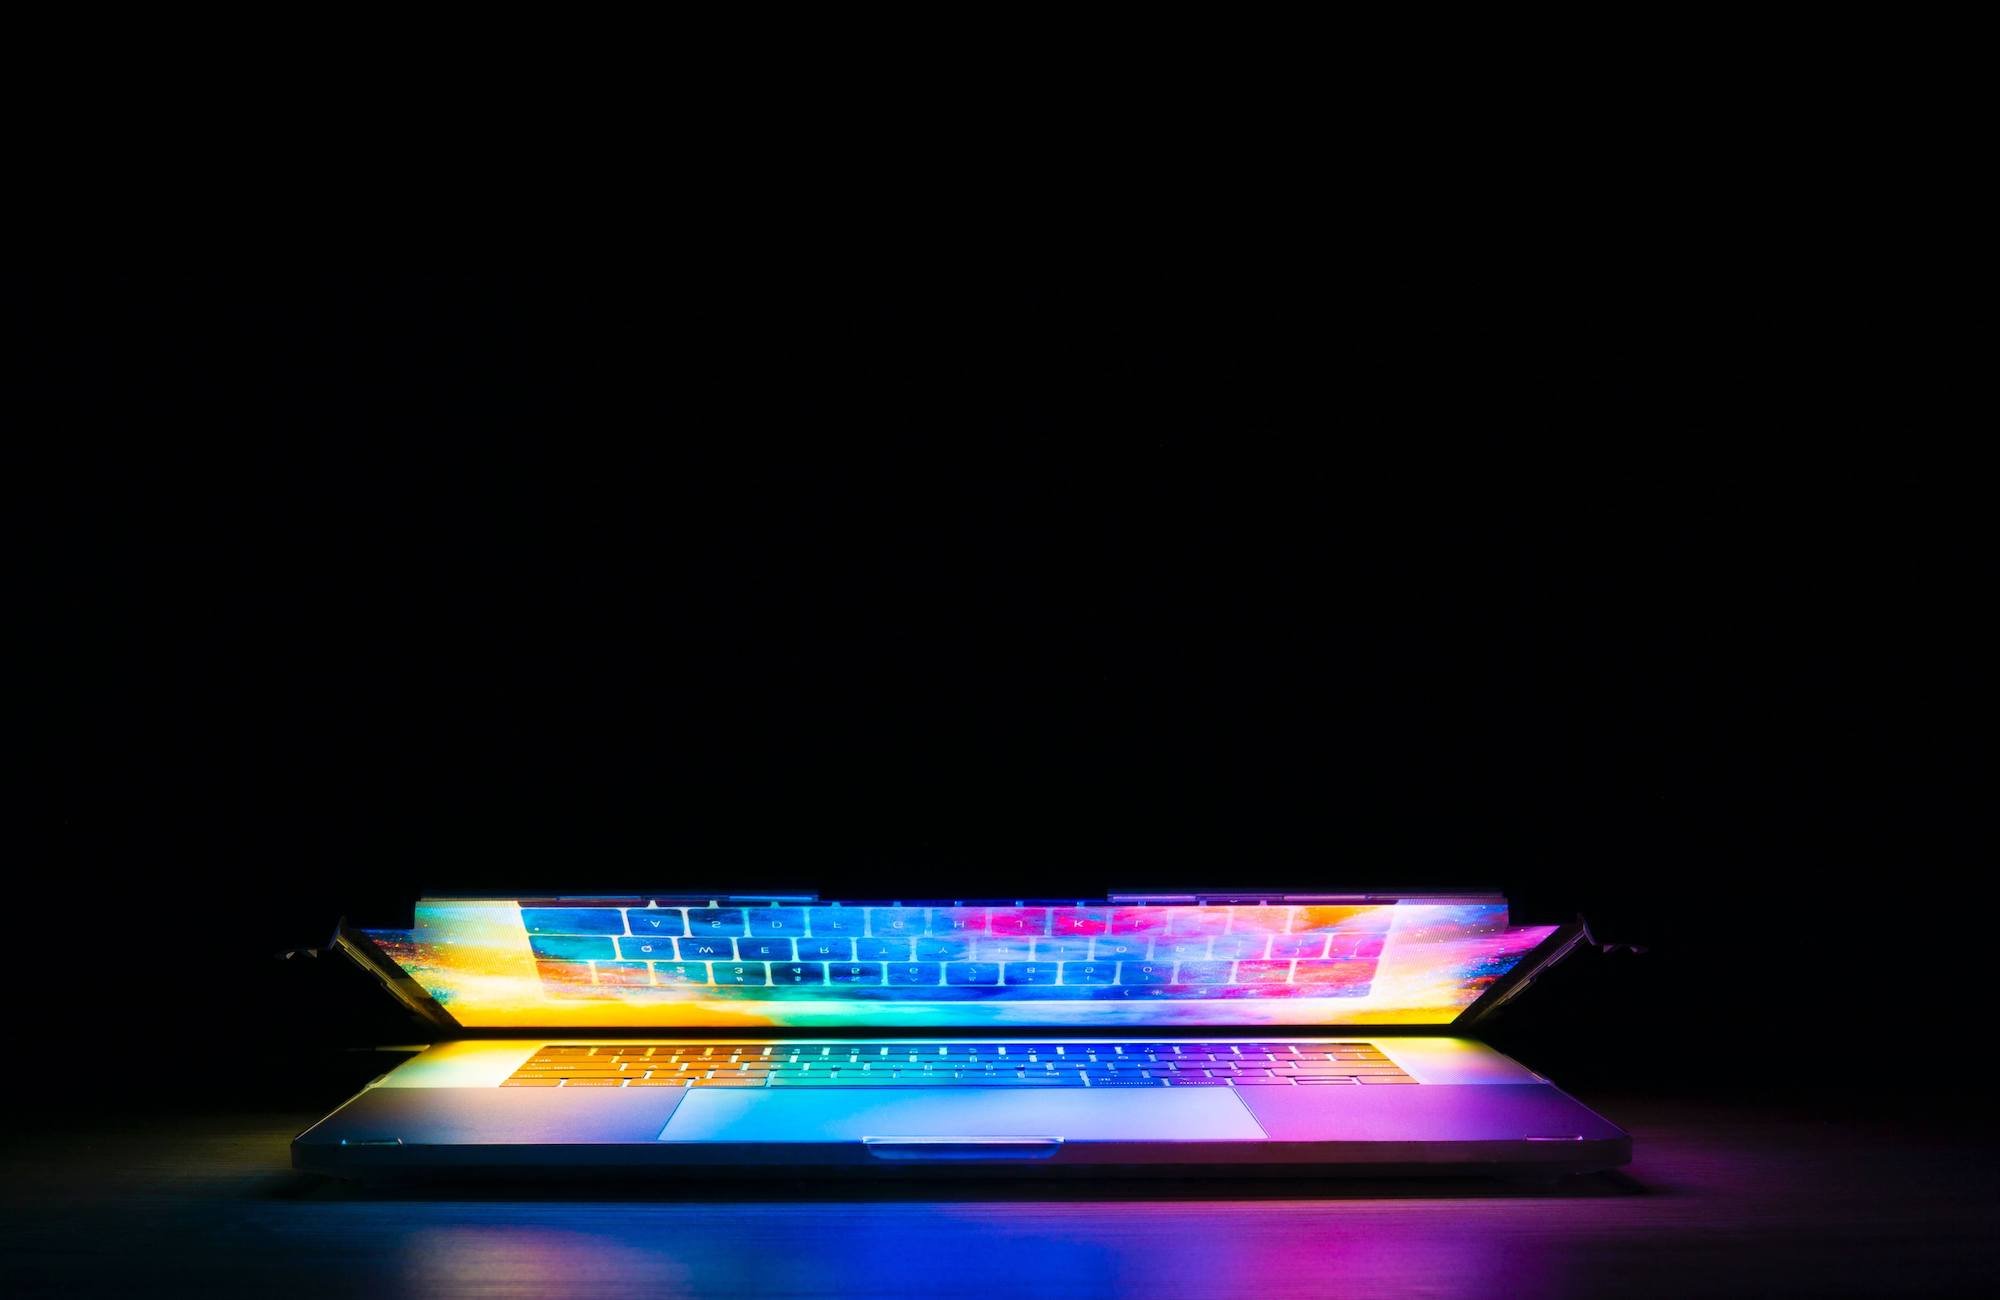 Ways to avoid big shiny object syndrome laptop opening with bright colors